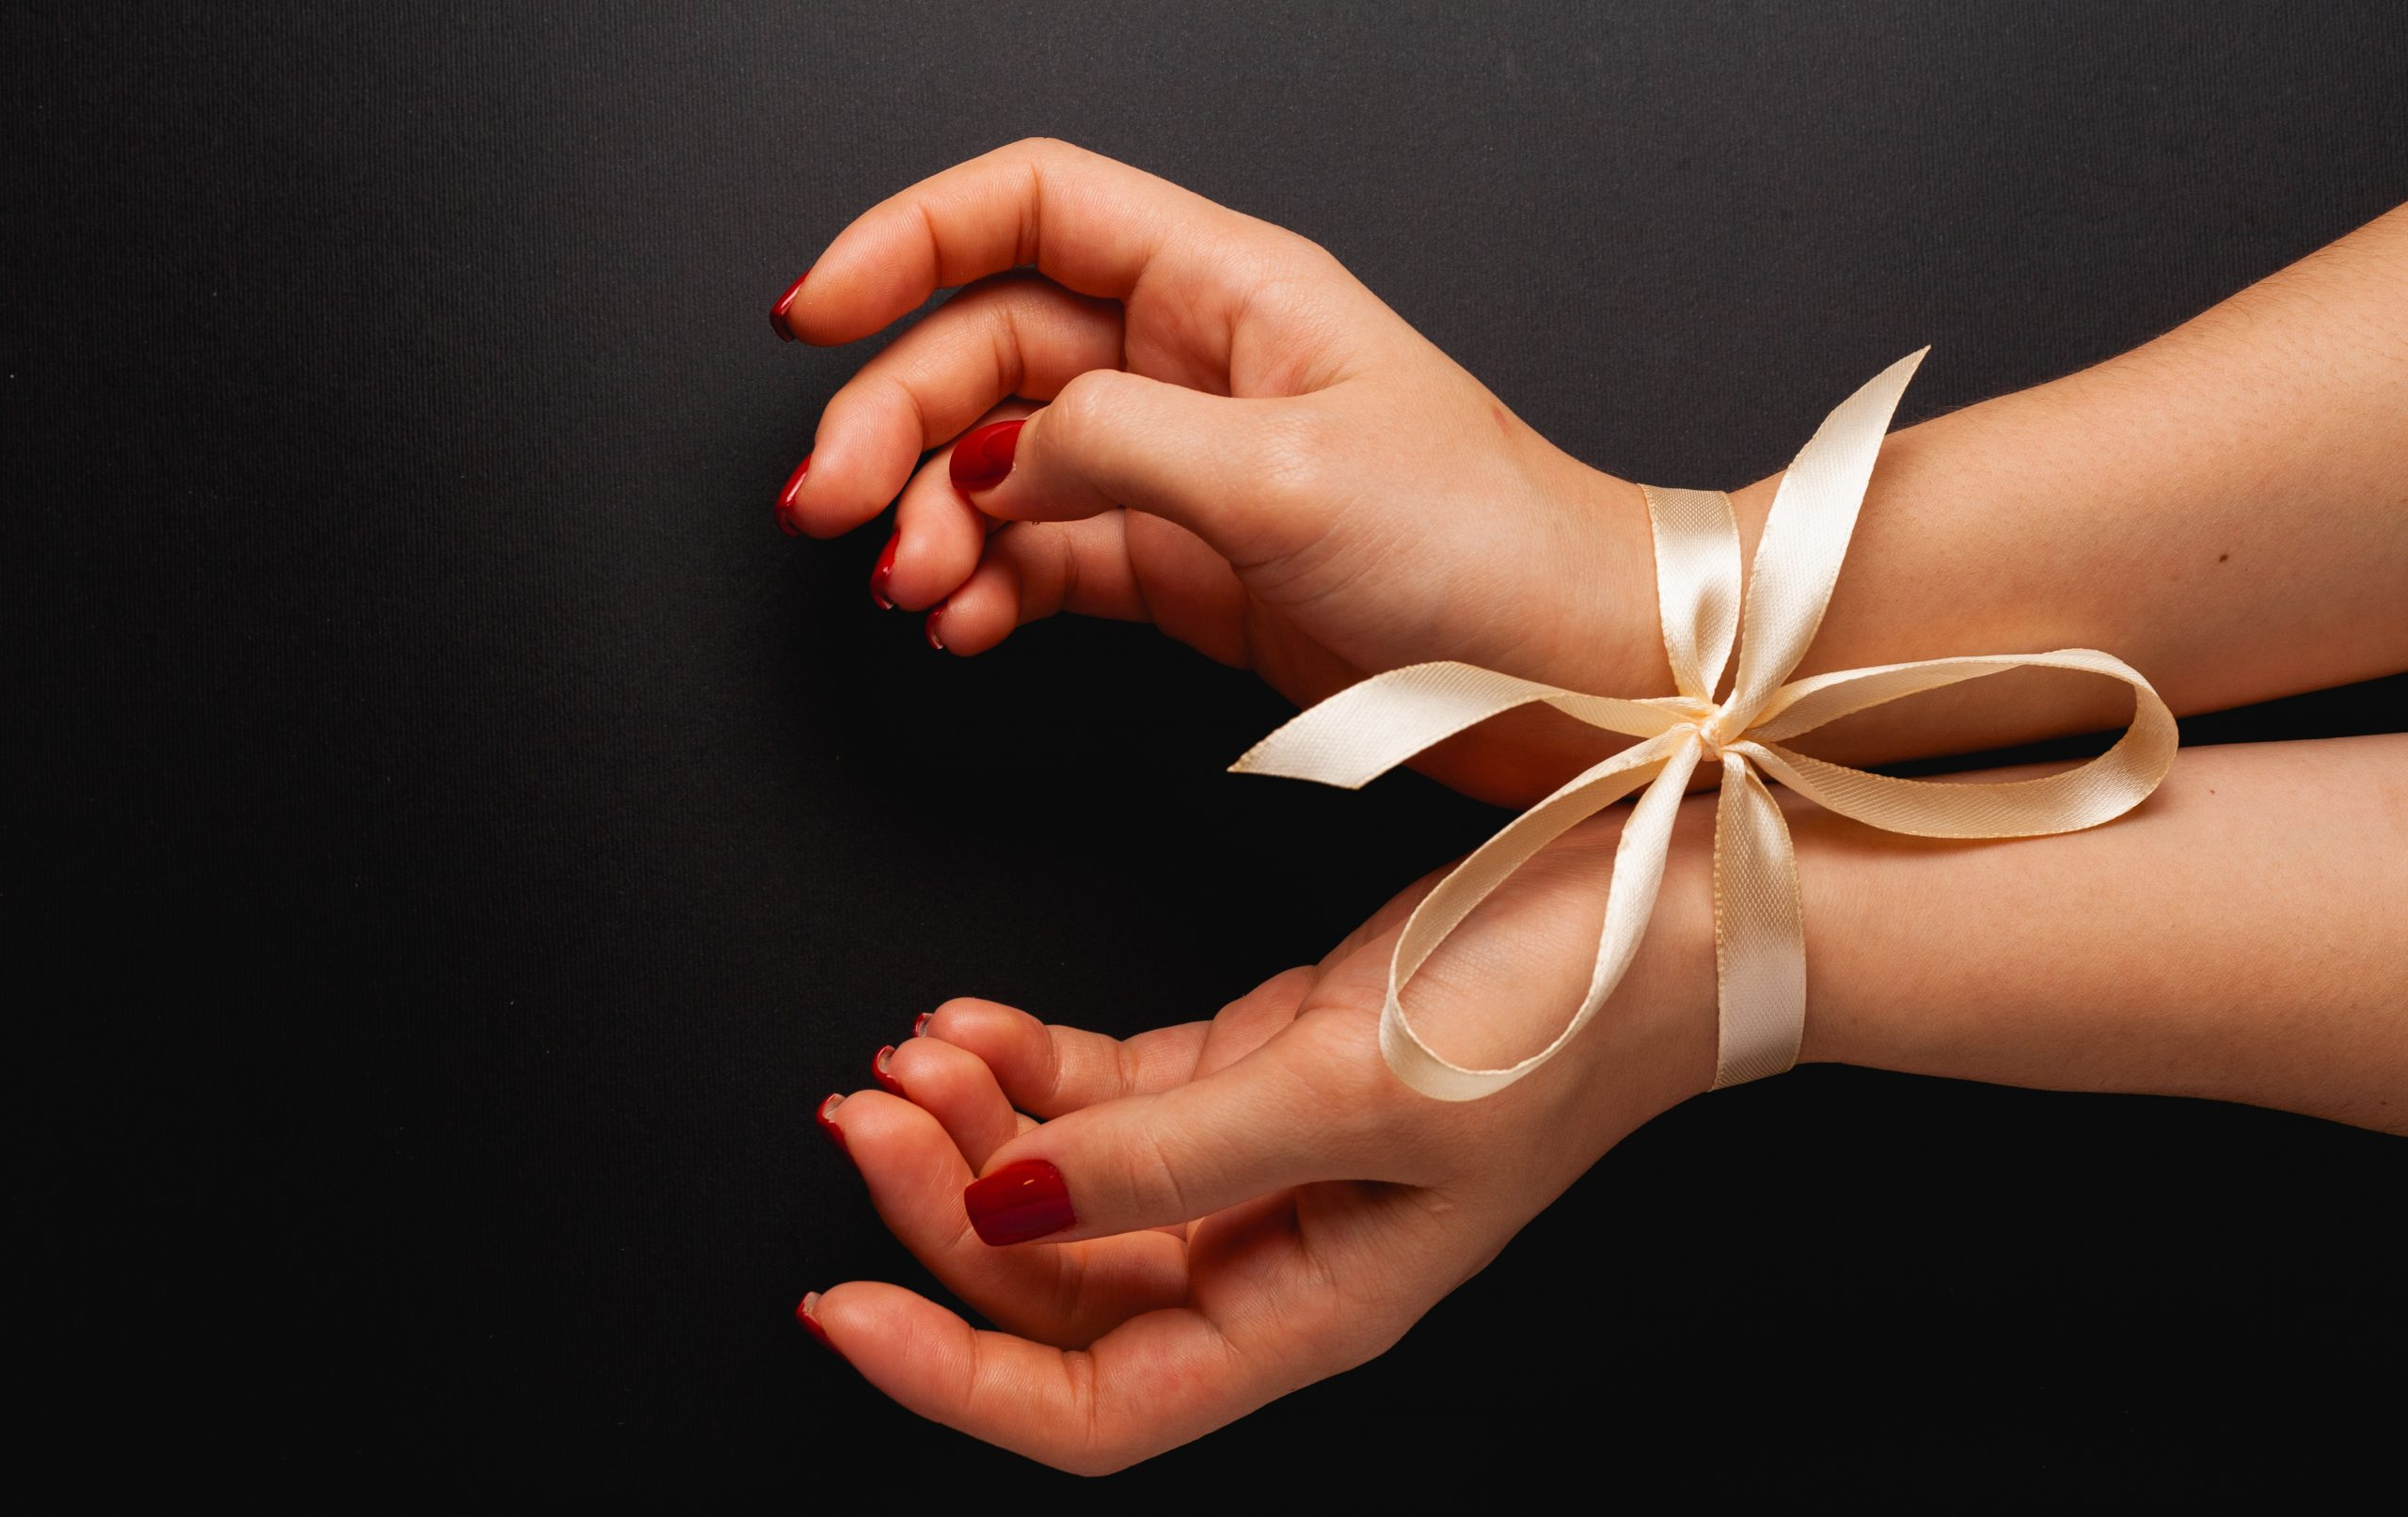 Beautiful female hands tied on a black background. Top view with place for text.